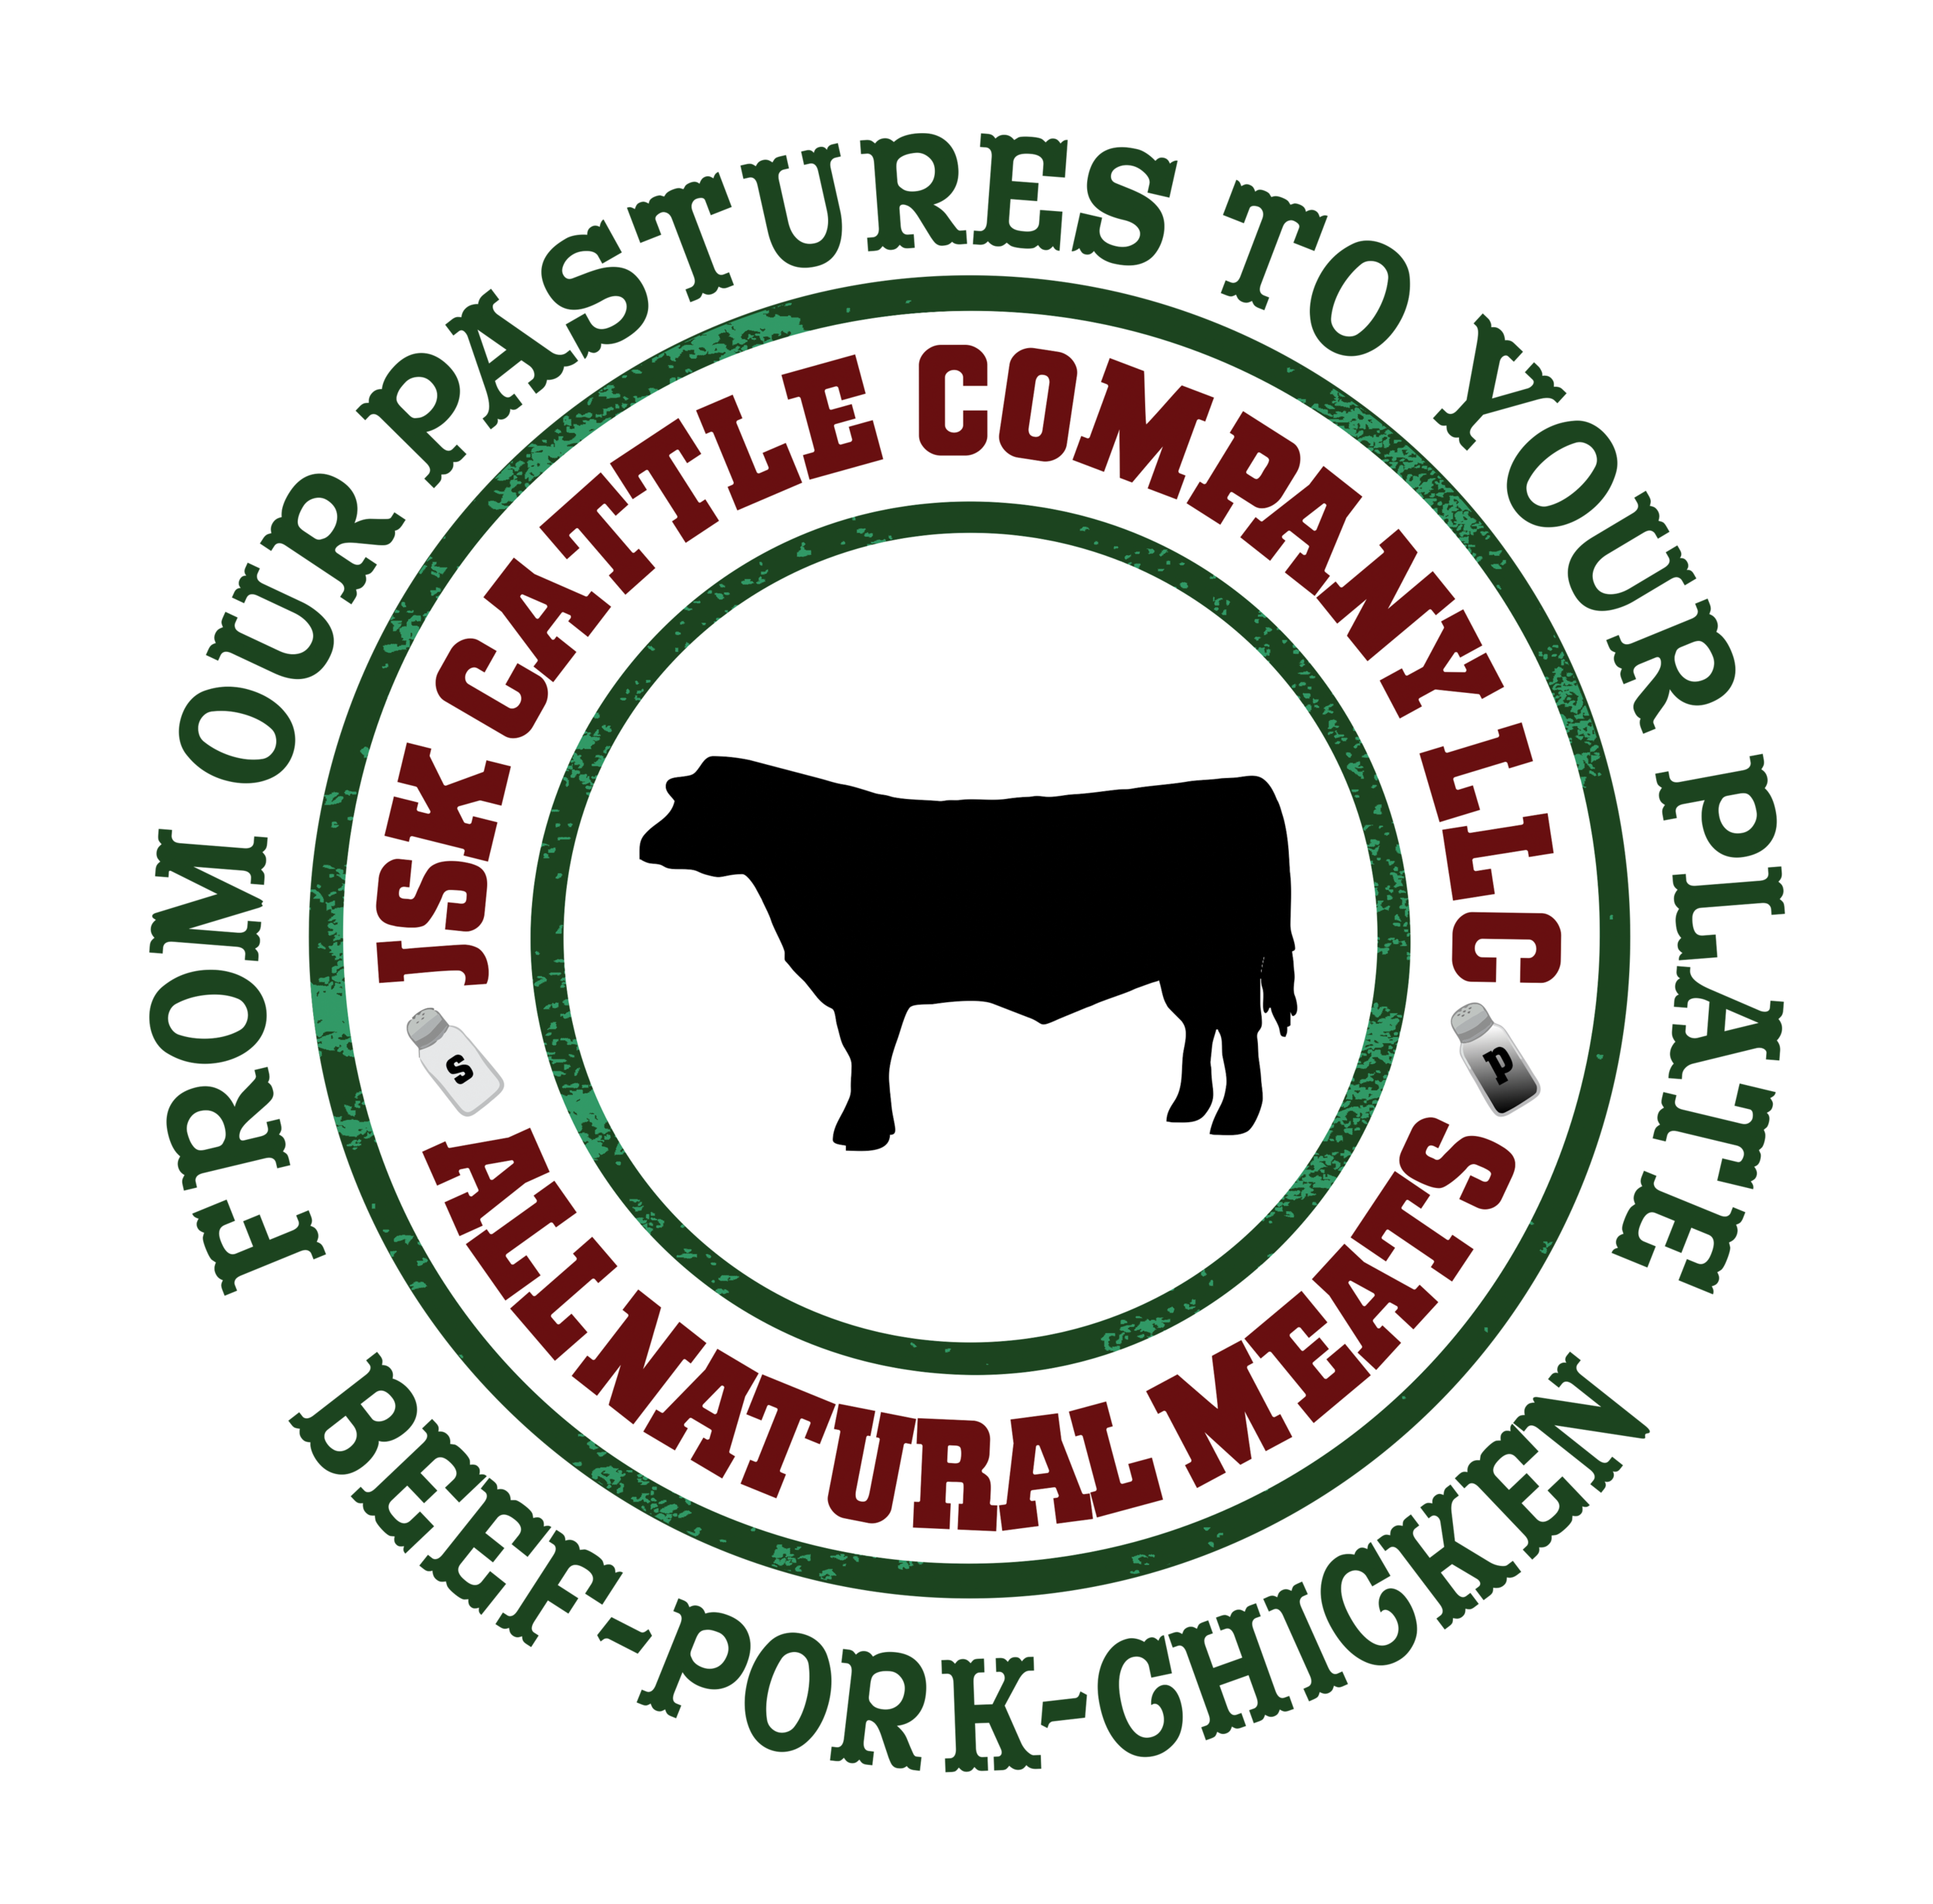 Cattle Co_reduced.png